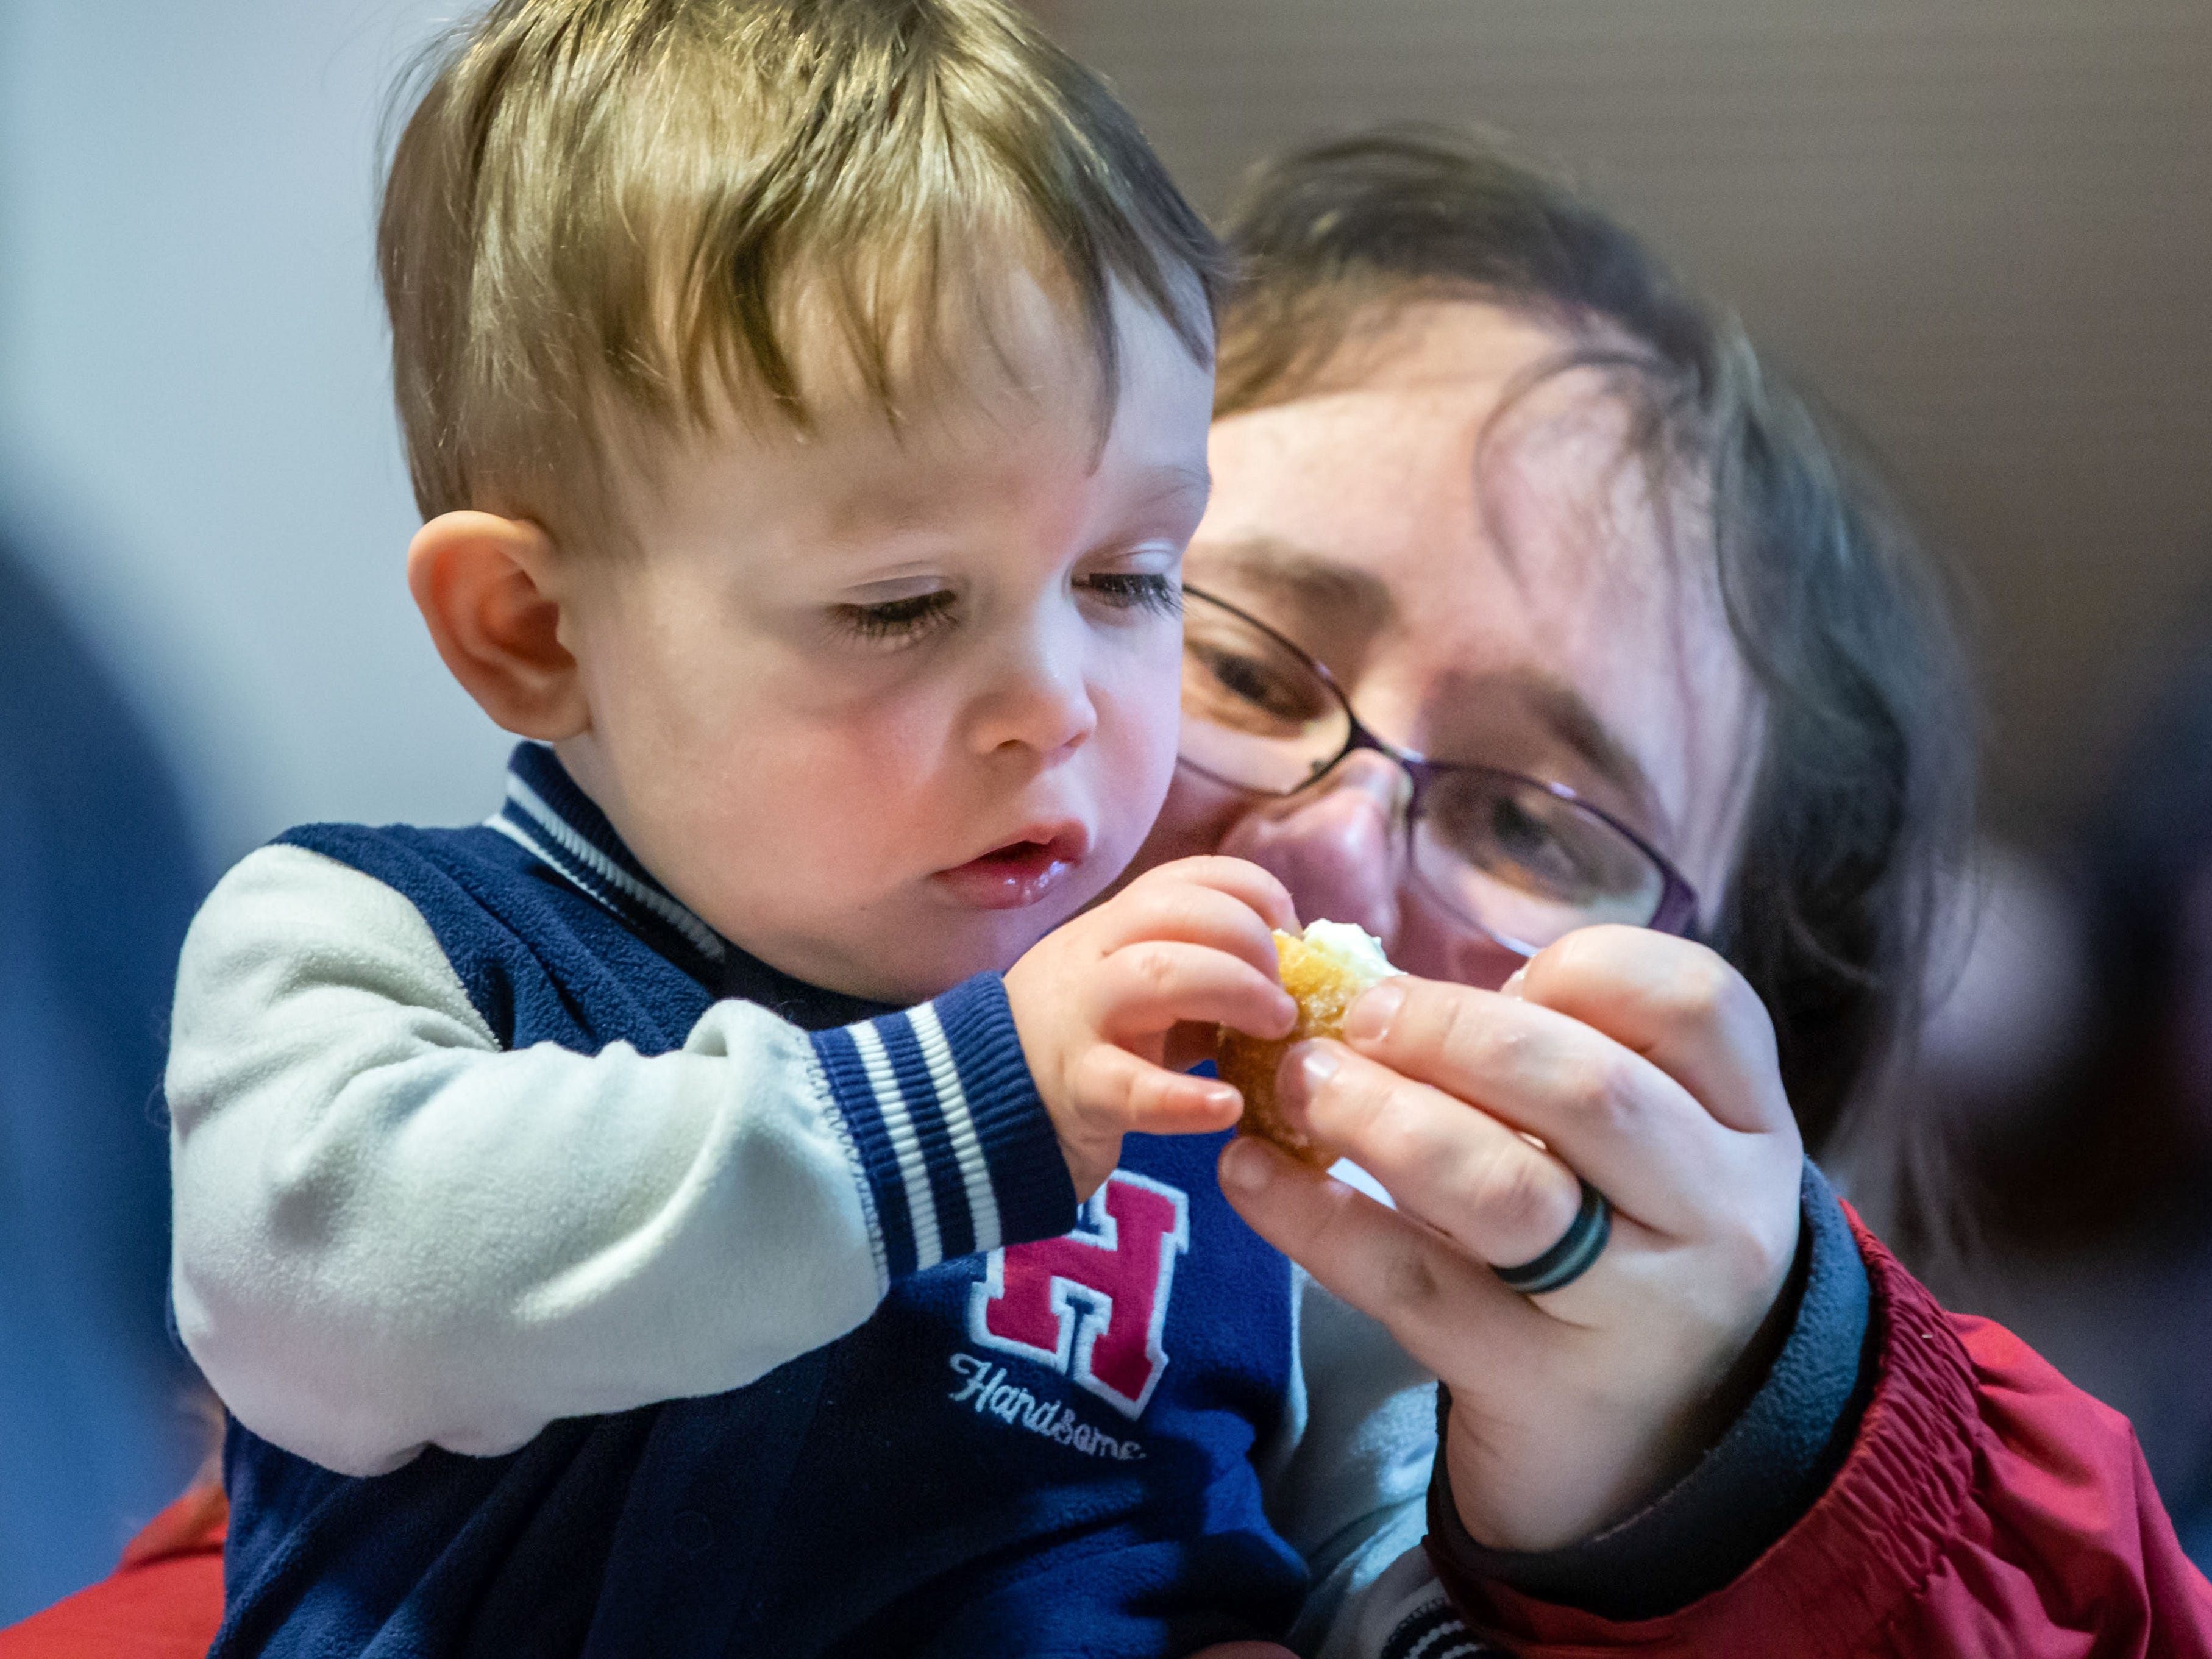 Sixteen-month-old SJ Laturi of Milwaukee samples a paczek with a little assistance from his mom Jamie during the Wisconsin Bakers Association's Paczki Preview Party at the Polish Center of Wisconsin in Franklin on Sunday, Feb. 24, 2019. The event, which showcases some of the best paczki from the area, also features live music, a special guest appearance by Little Miss Polish Fest and more.